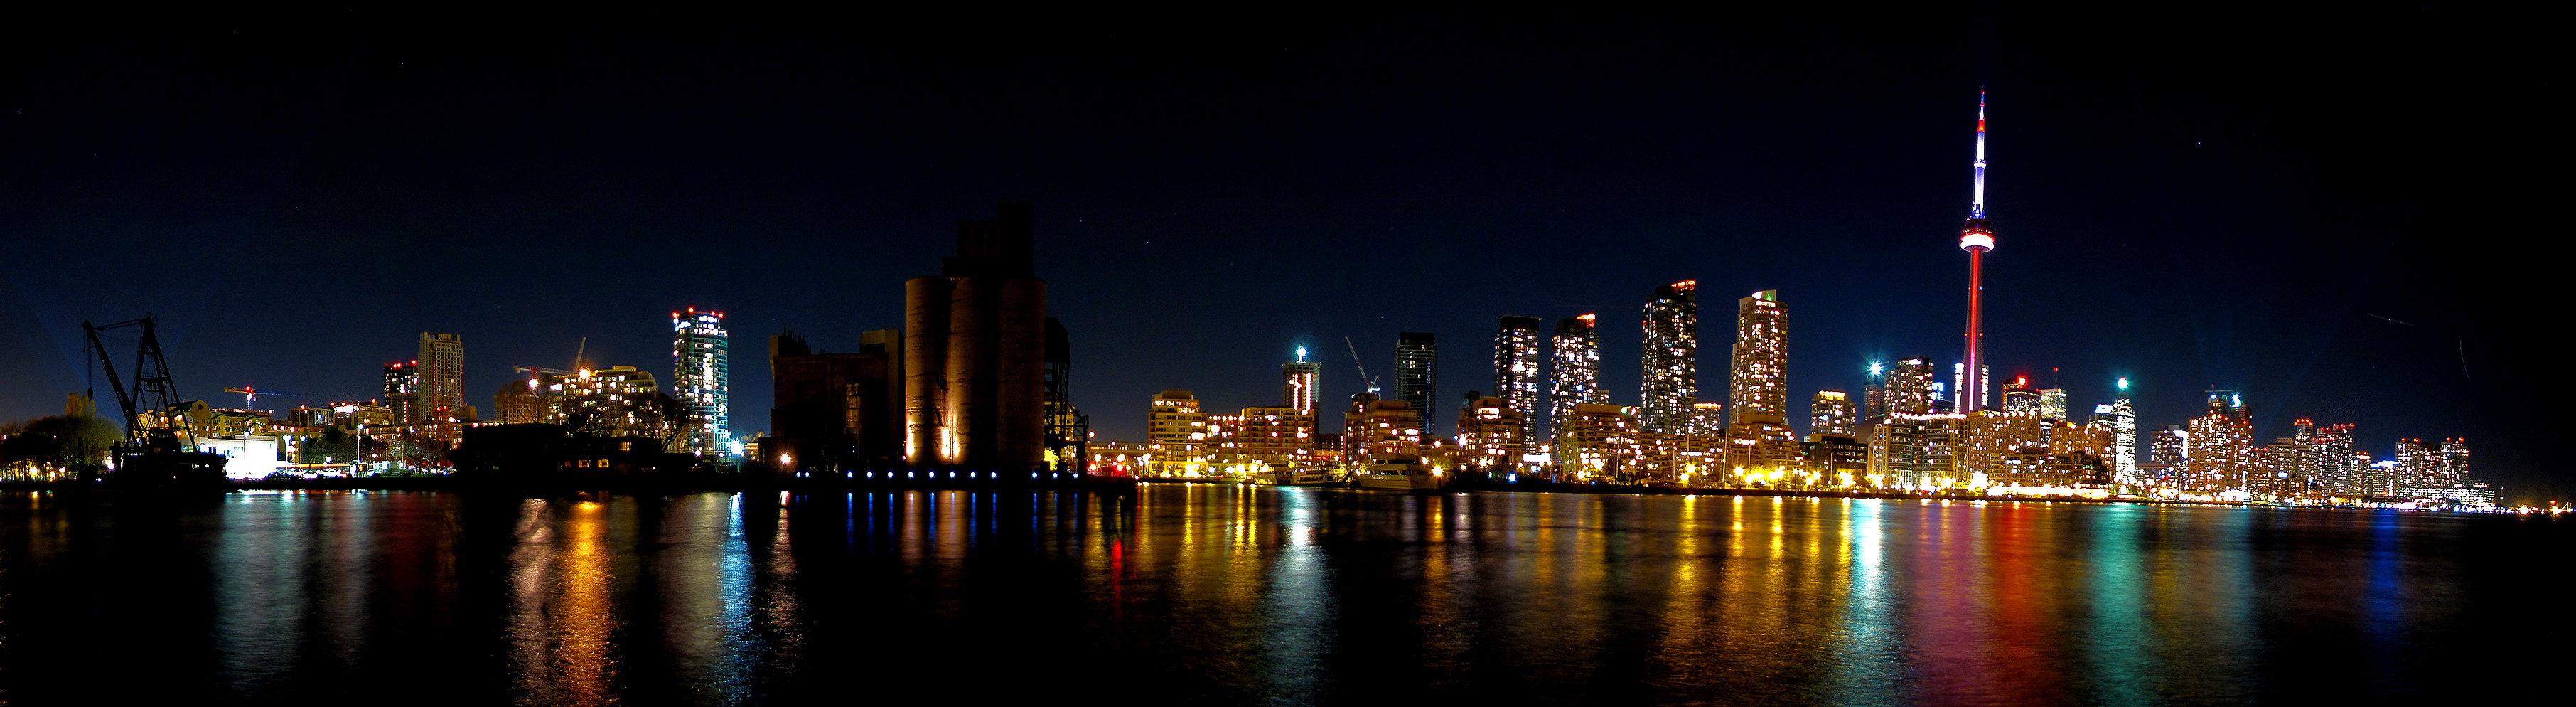 city night skyline panorama - photo #41